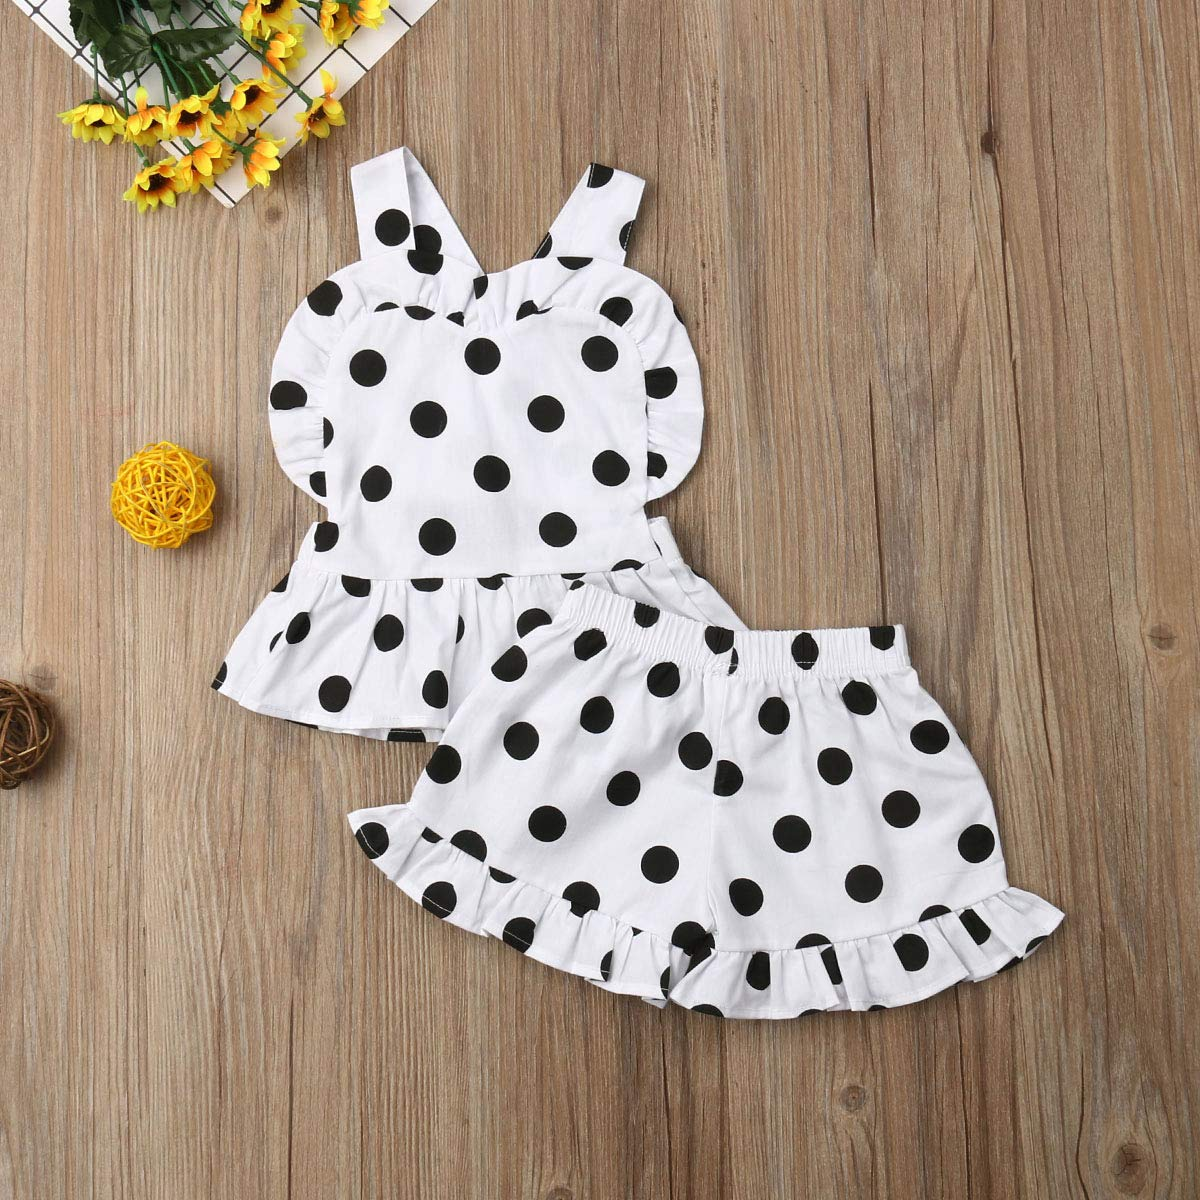 Baby Little Girl 2 Pieces Short Set Polka Dots Backless Heart Shape Tops Ruffle Short Pants Outfit